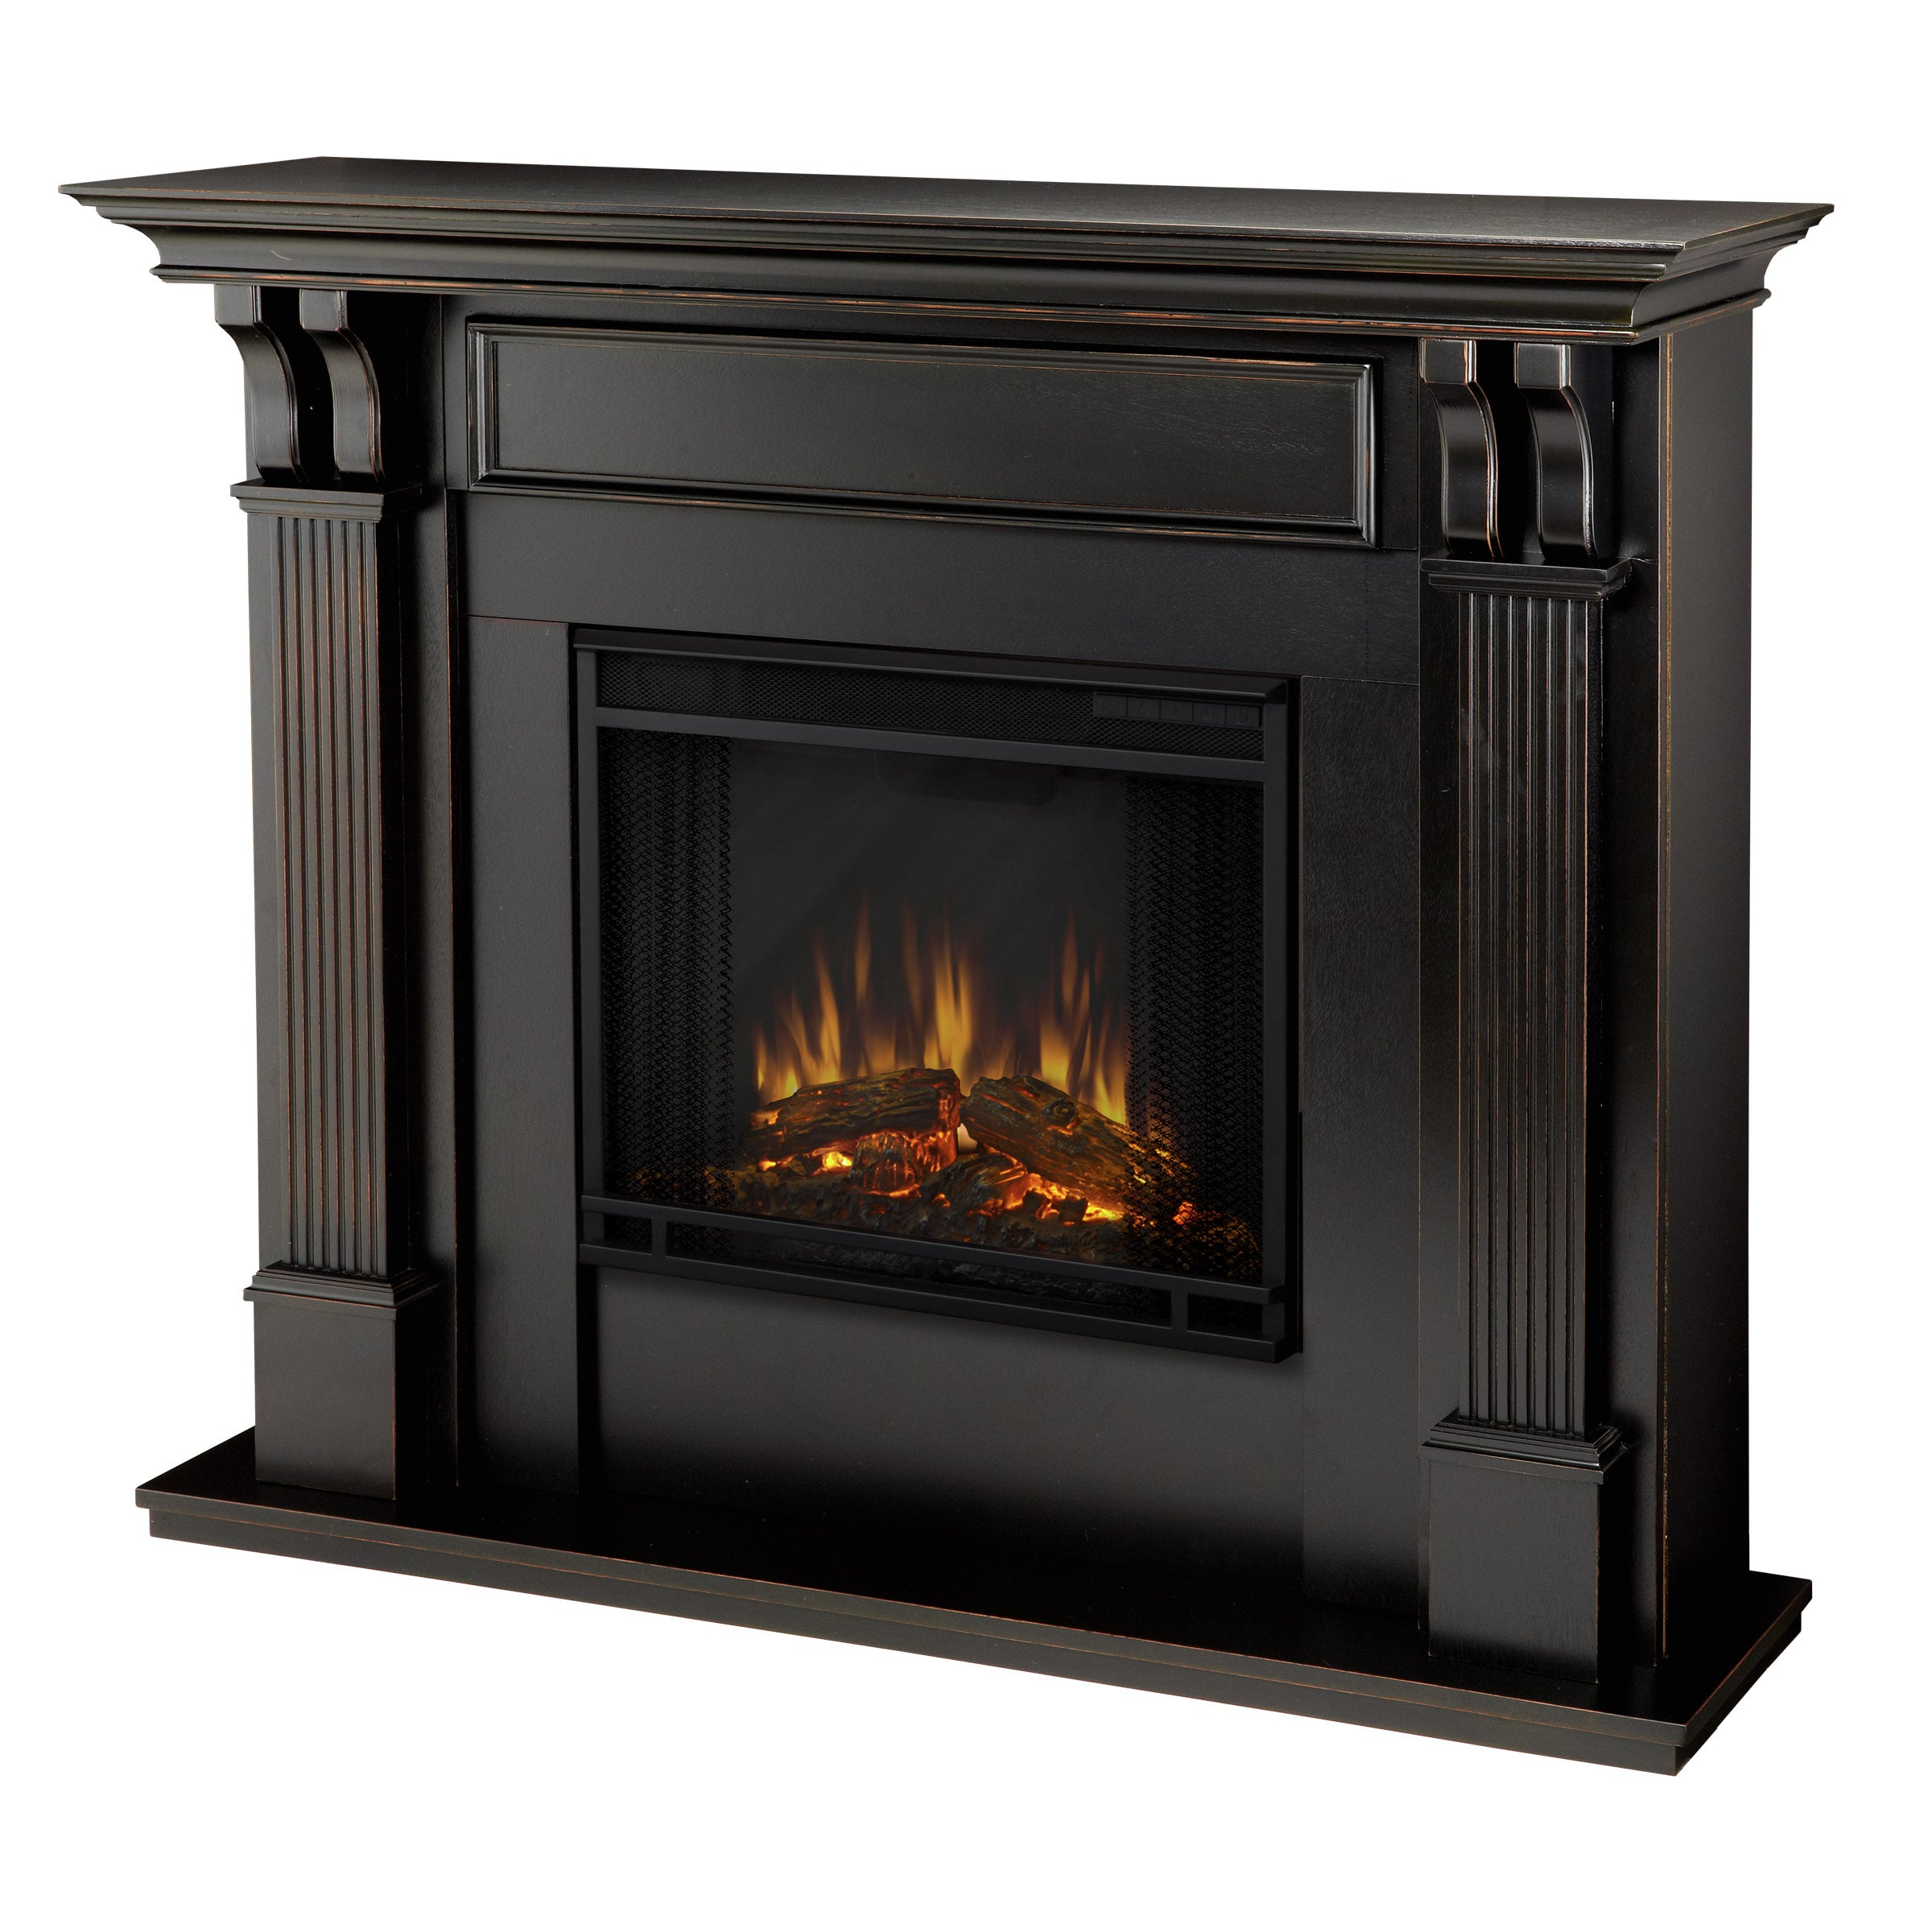 Real Flame Ashley Blackwash Electric Fireplace By Real Flame at Sears.com